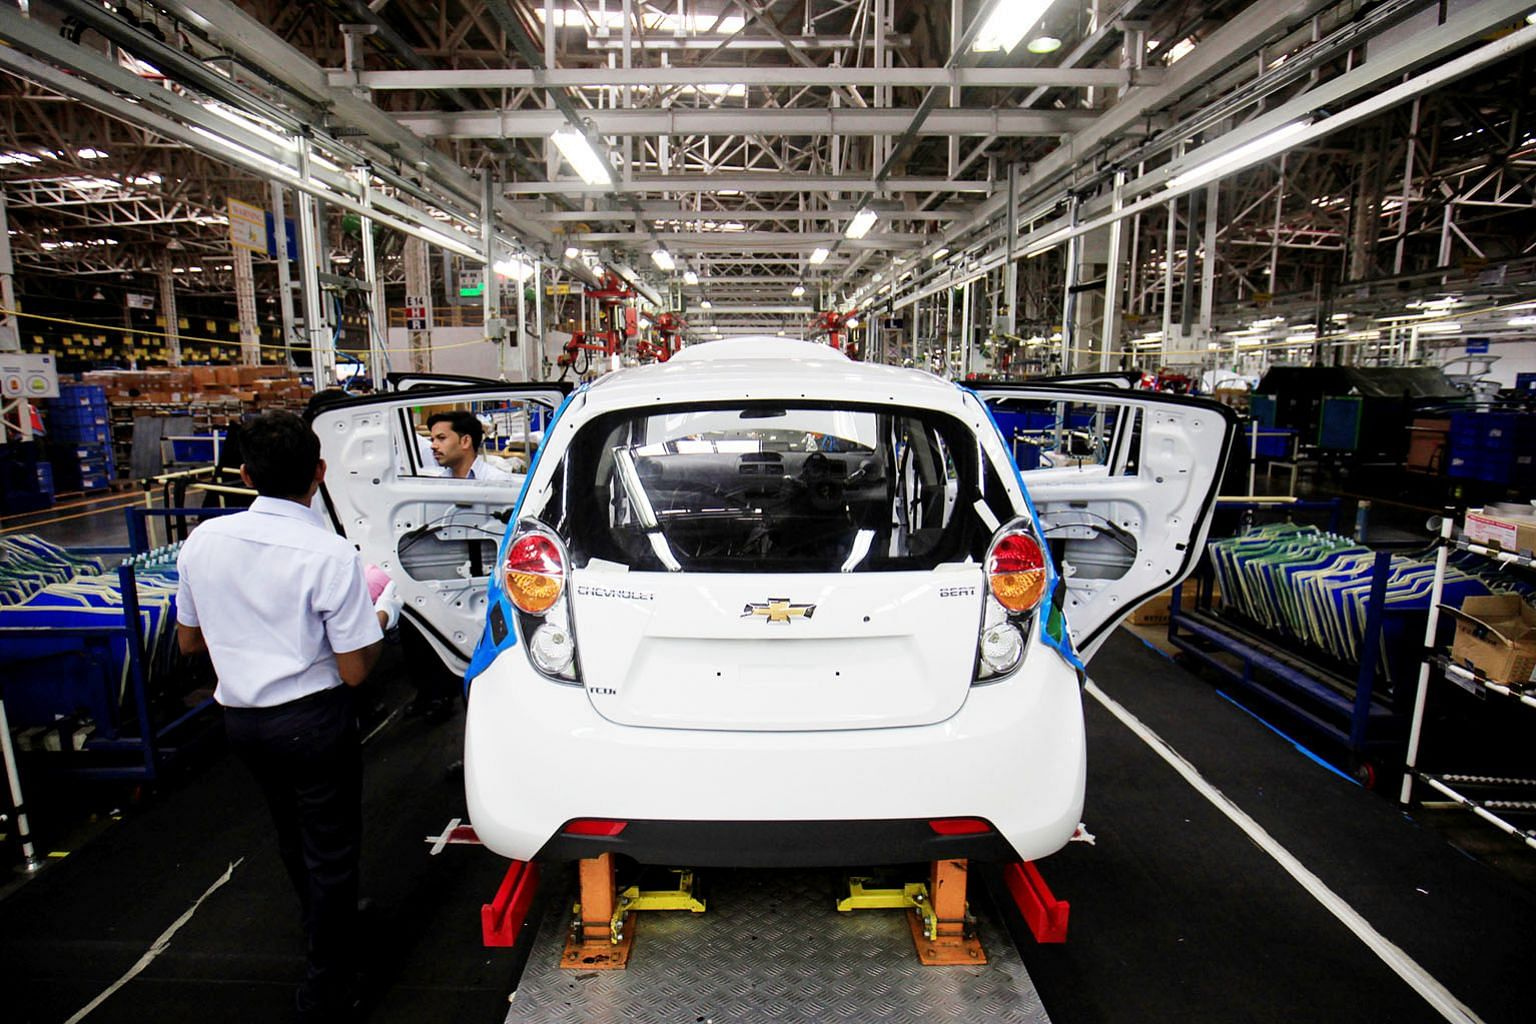 General Motors will stop selling Chevrolet vehicles in India, South Africa and East Africa. In the last two markets, GM is also selling its businesses, dealership and plant to Isuzu.